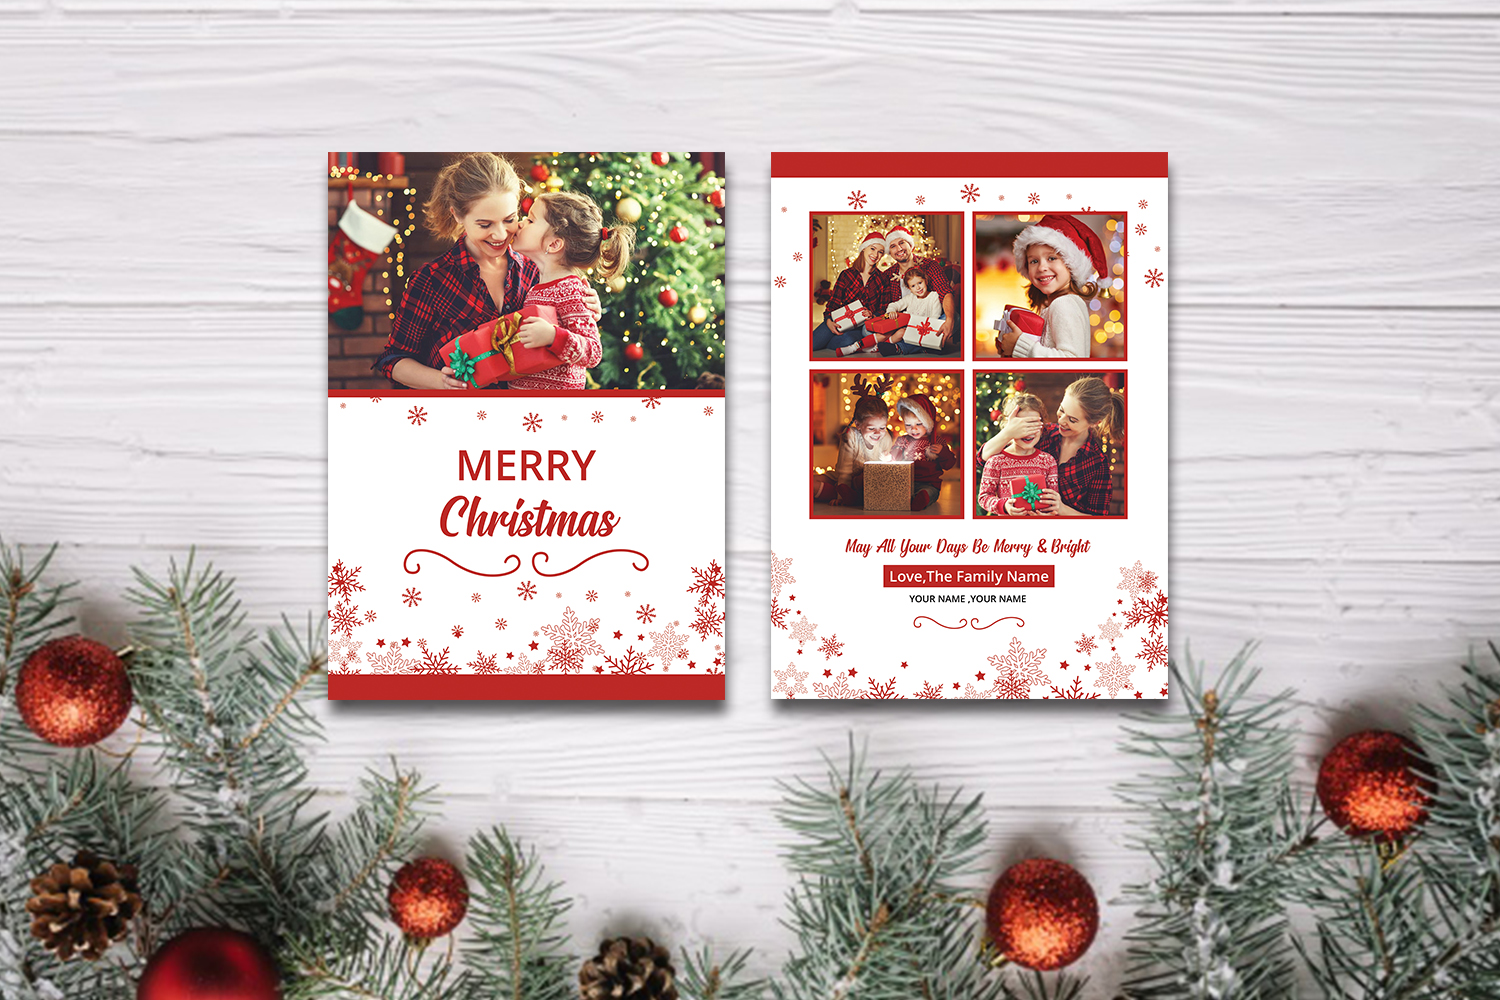 Christmas Photo Greeting Card Template de Identidade Corporativa №123988